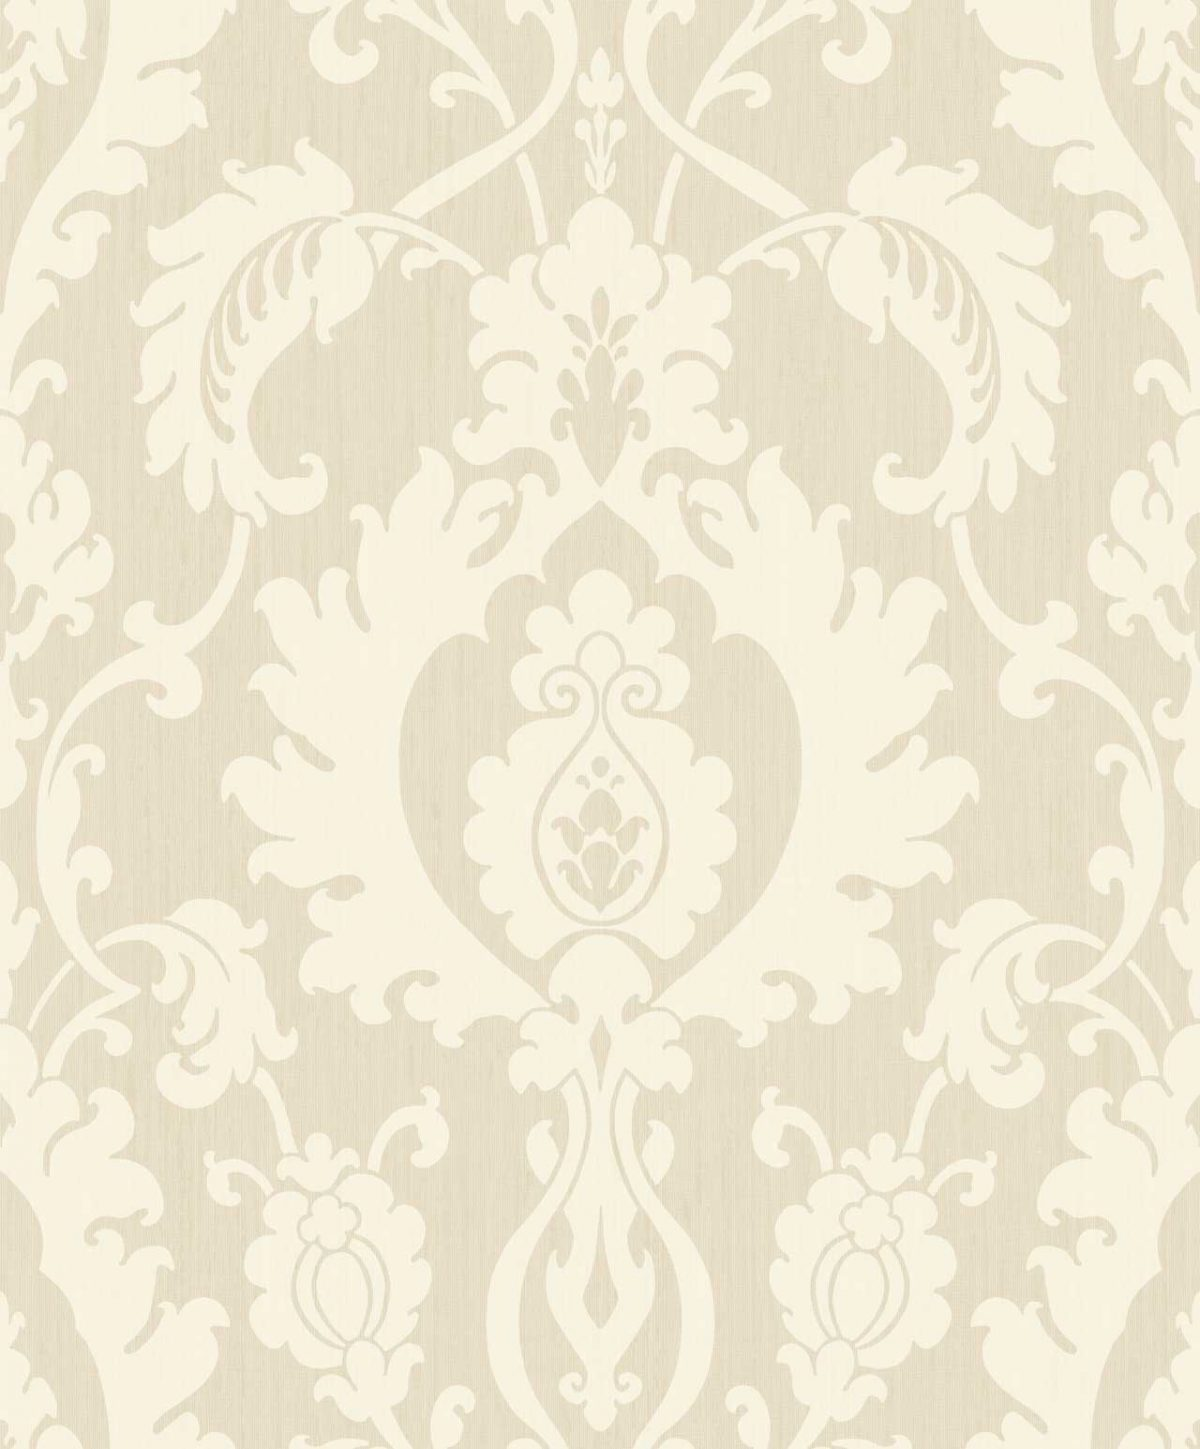 Sloan-Luxury-Wallpaper-SL00831-BOLD-DAMASK